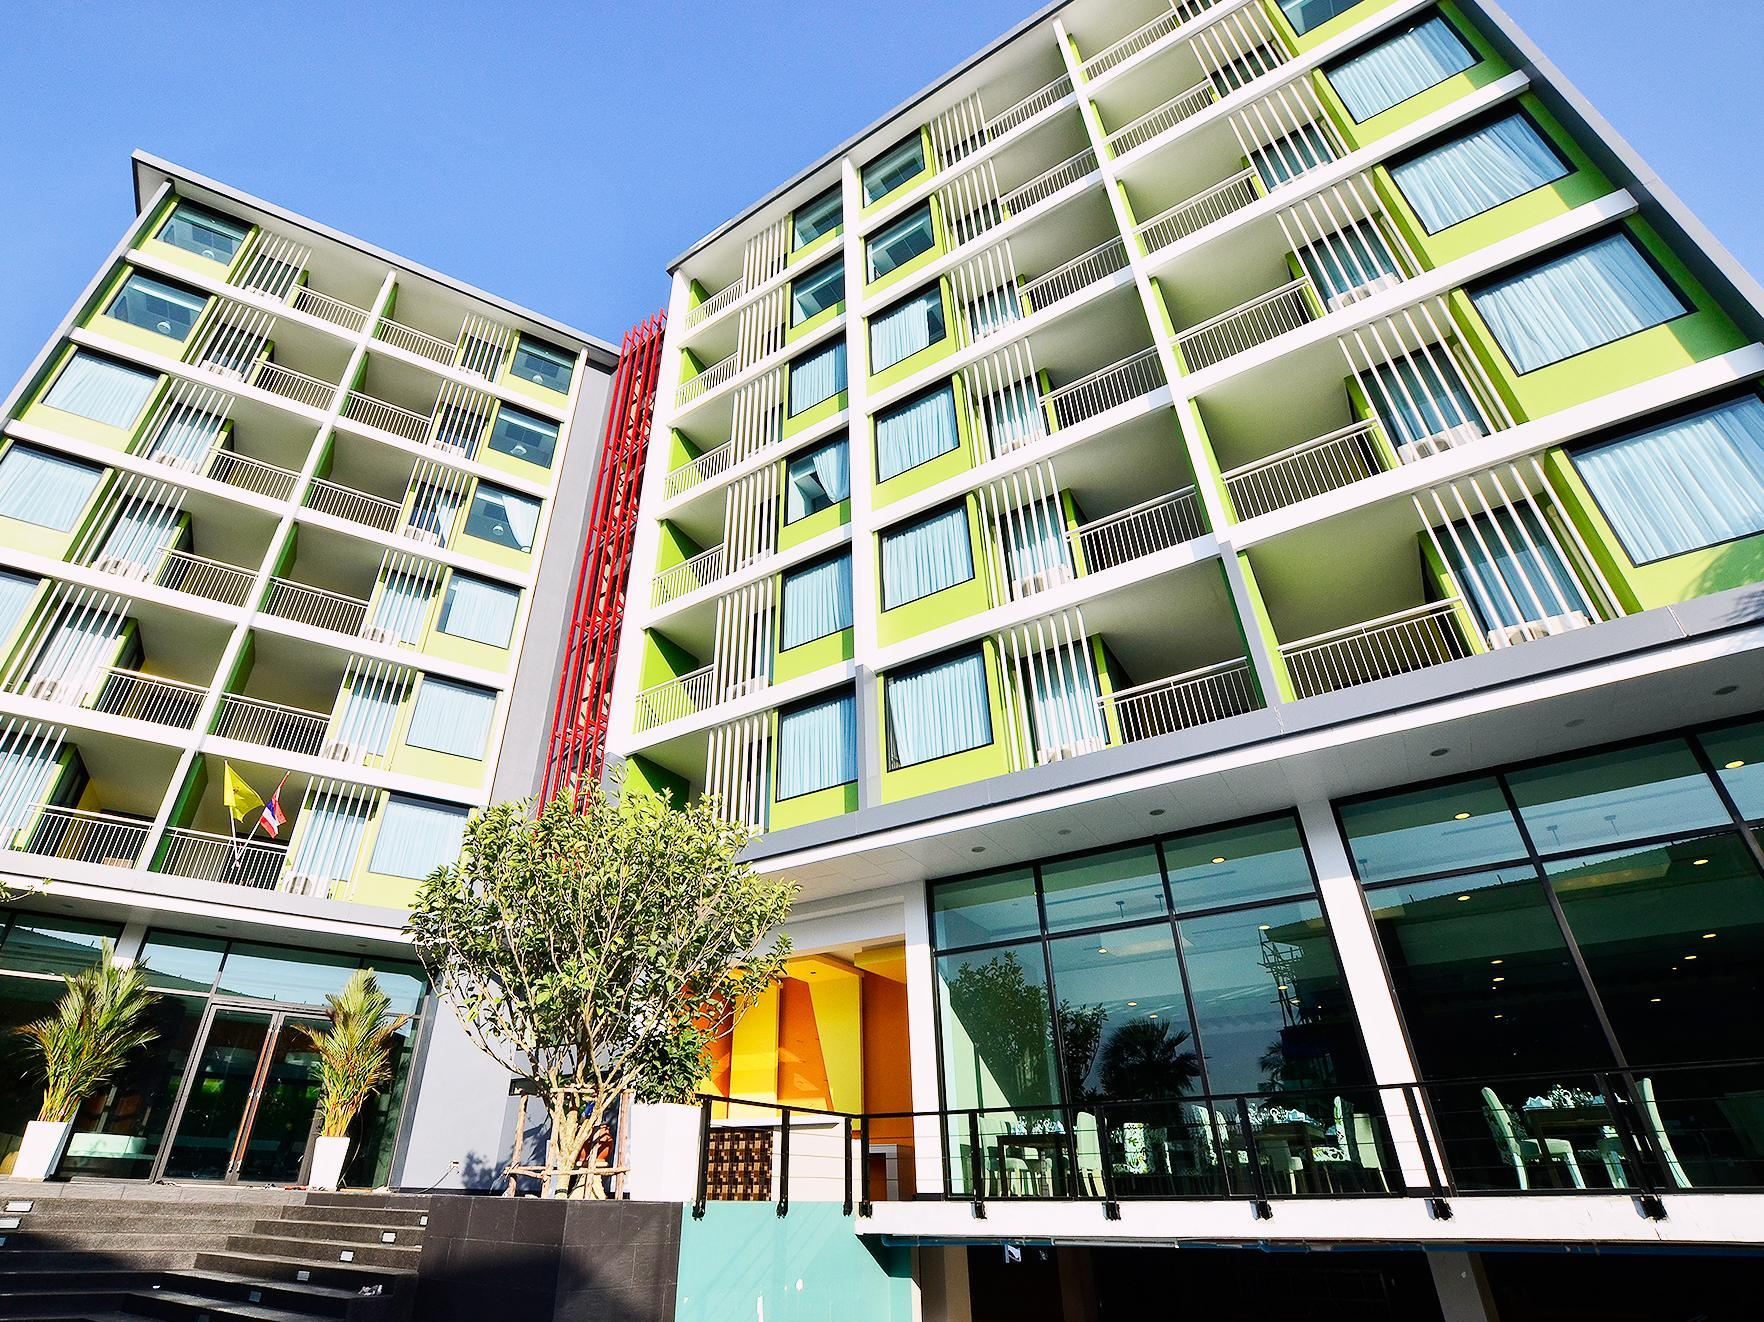 Standard Double atau Bilik Twin Termasuk Balkoni (Standard Double or Twin Room with Balcony)